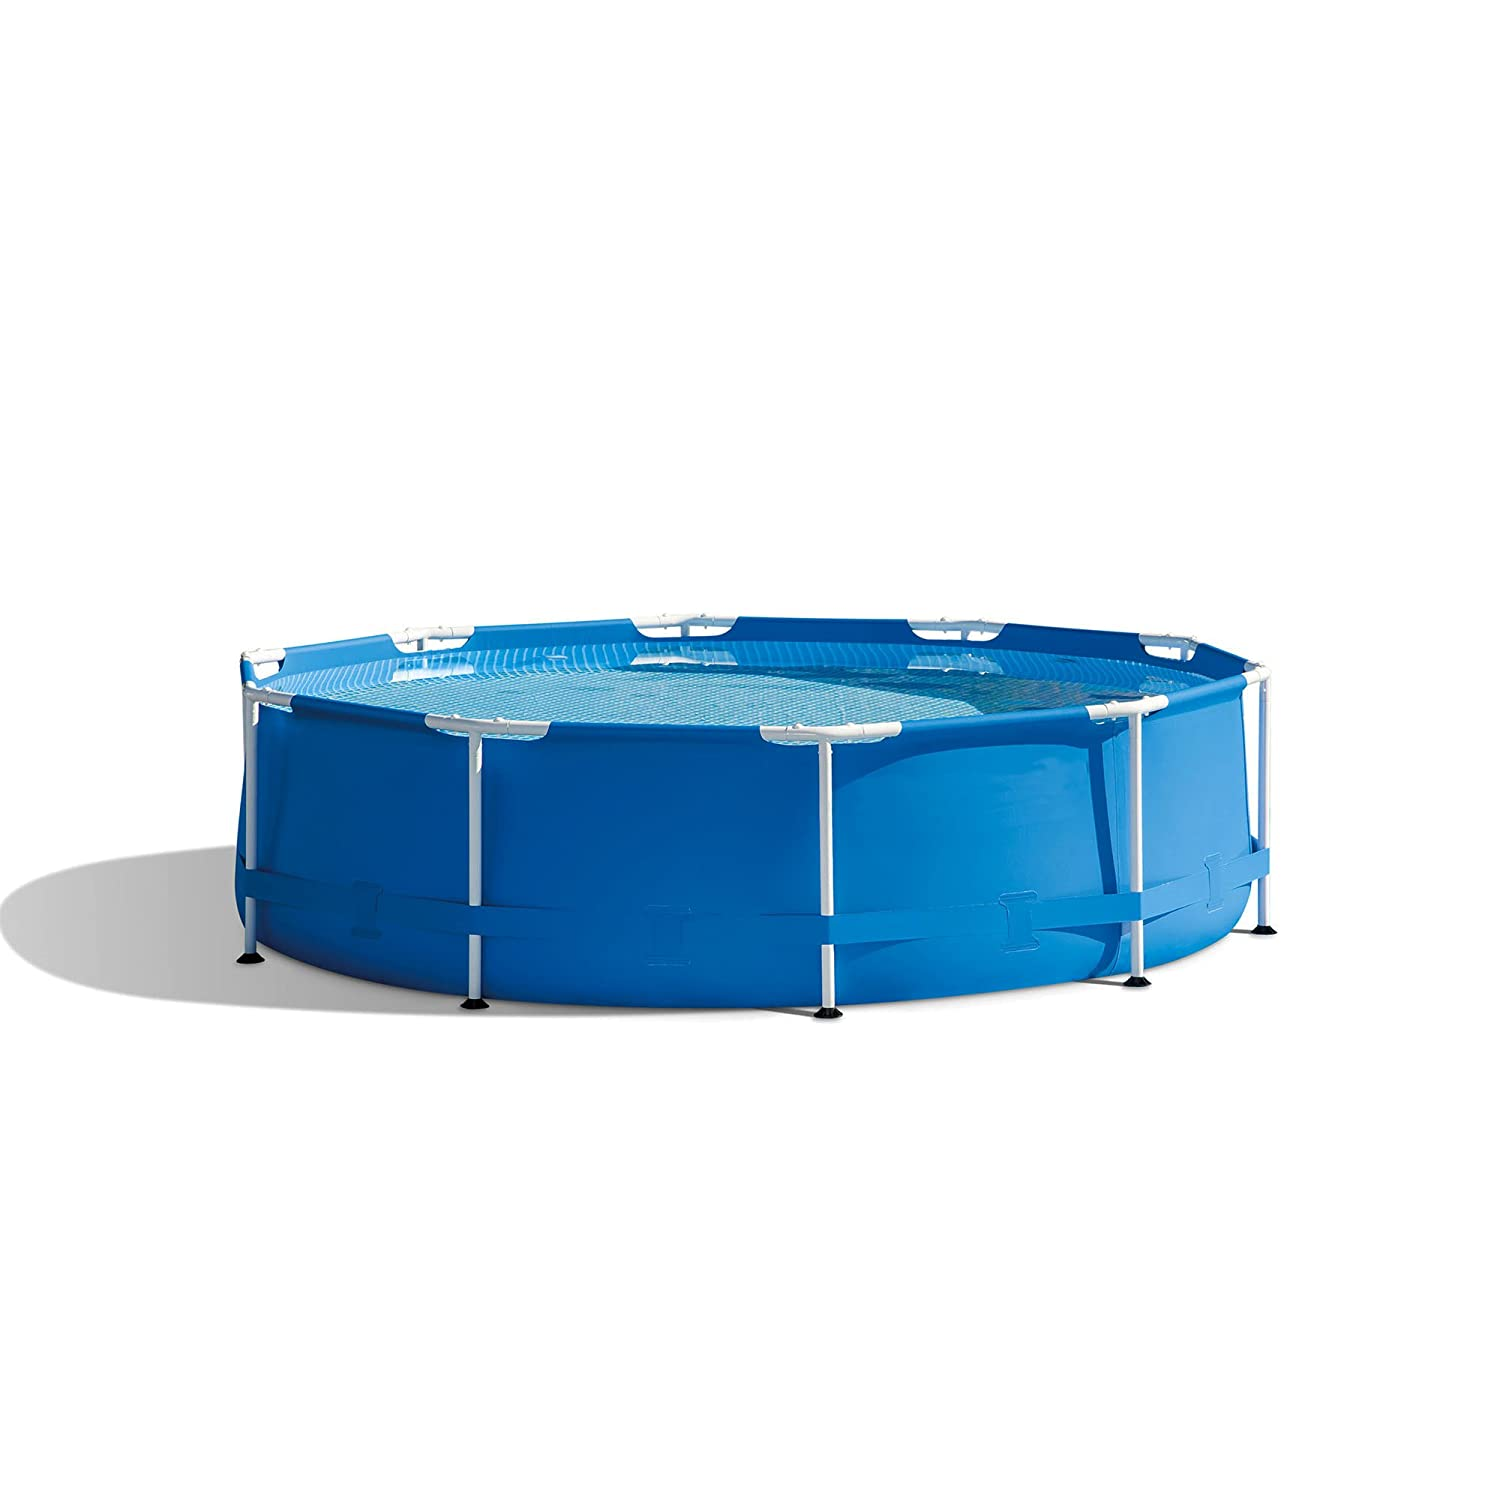 Best steel frame swimming pool 2018 - Gift Ideas for Techie Homebodies